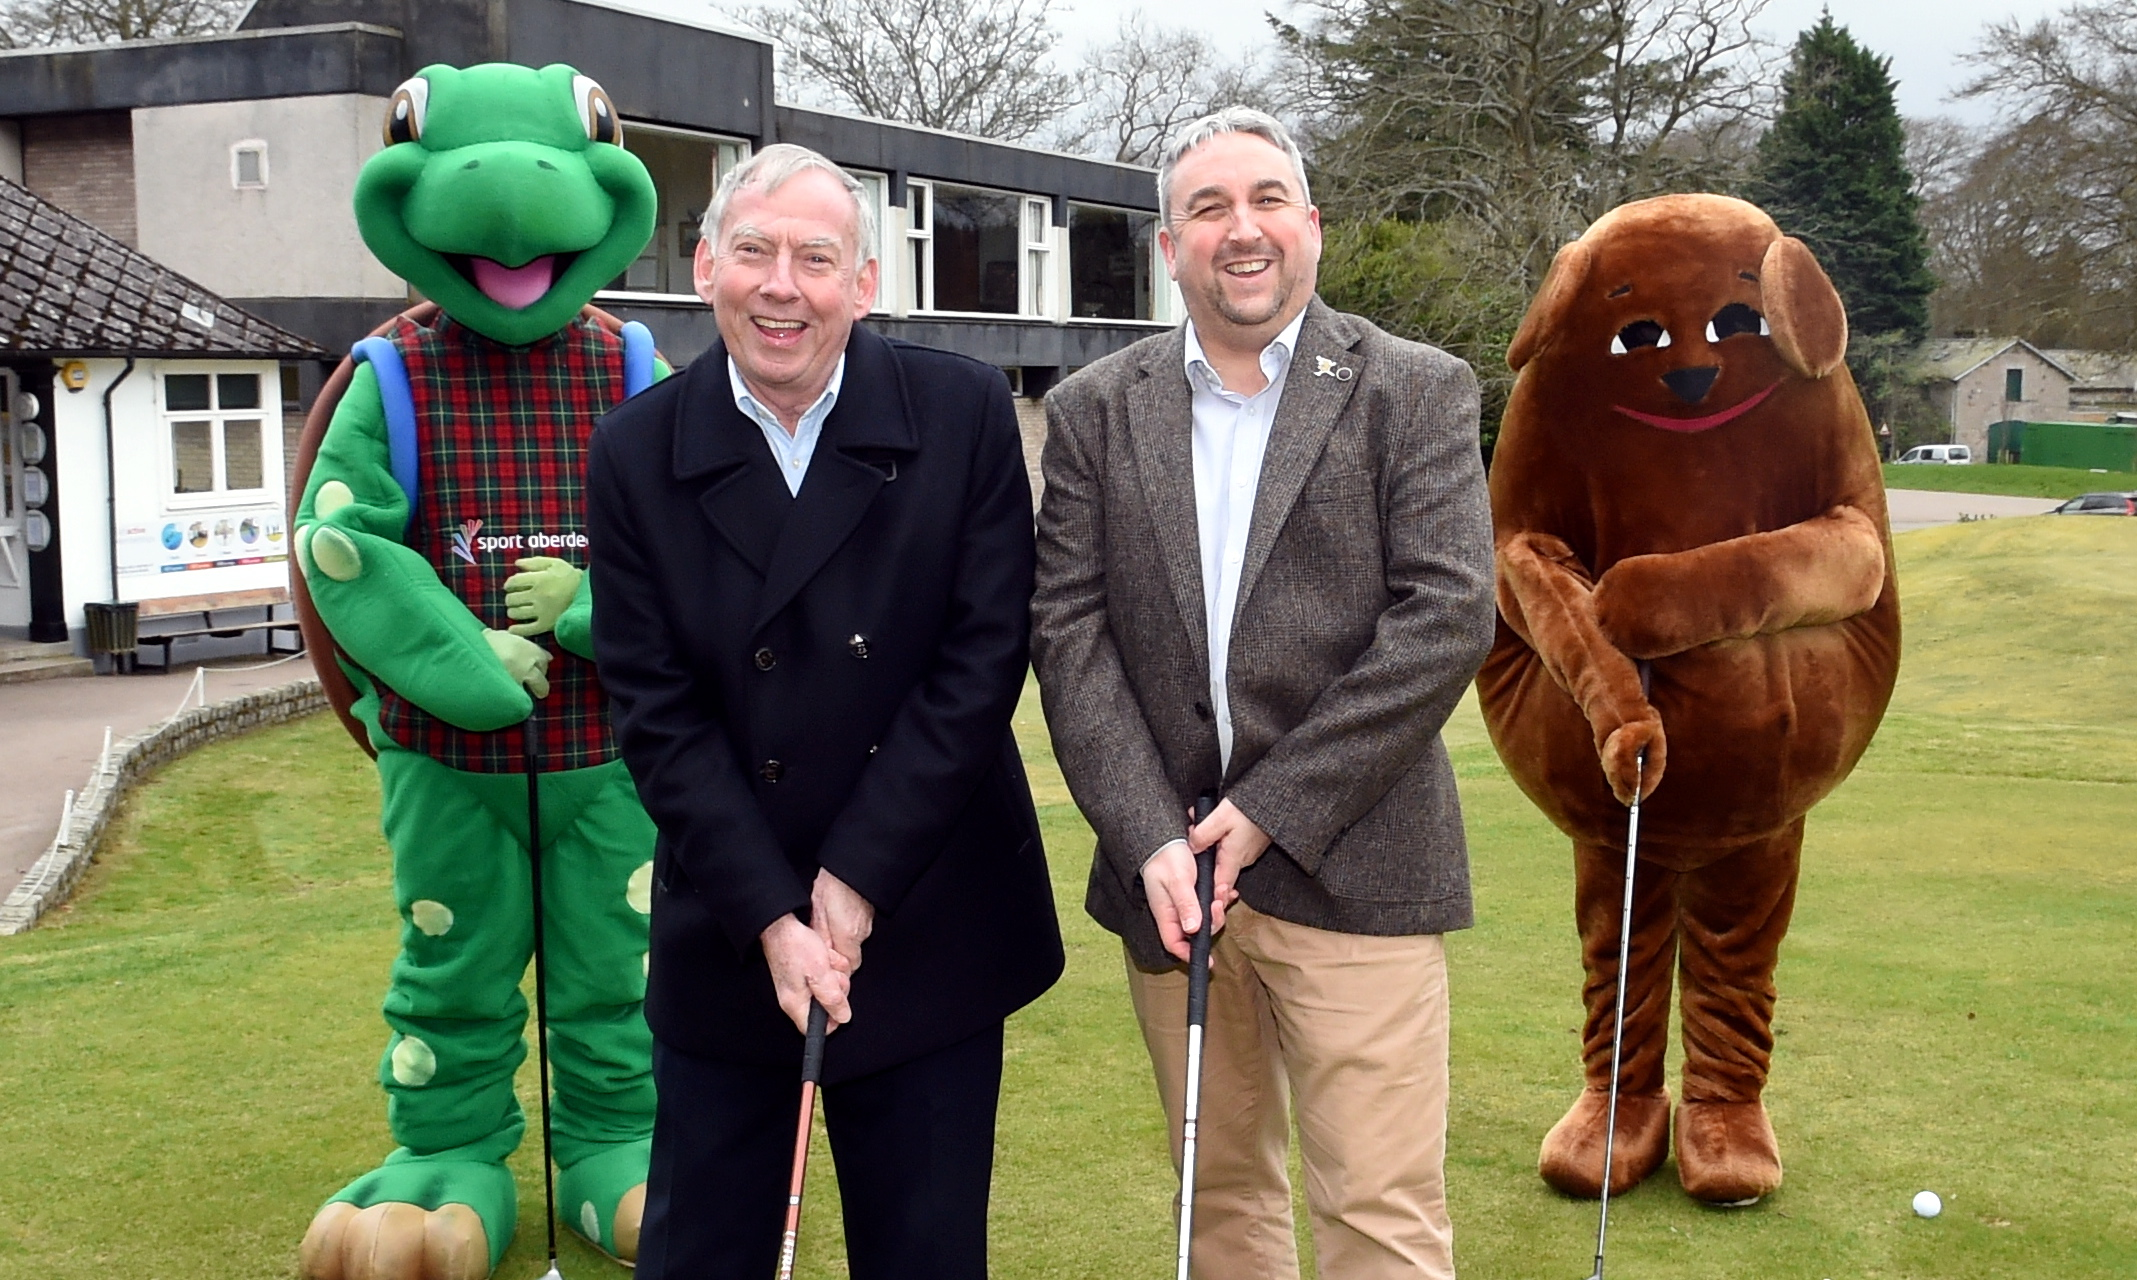 The Active Aberdeen Partnership's Tony Dawson, left, and the ARCHIE Foundation's David Downie, with the Sport Aberdeen and ARCHIE Foundation mascots when the event was announced. Picture by Jim Irvine